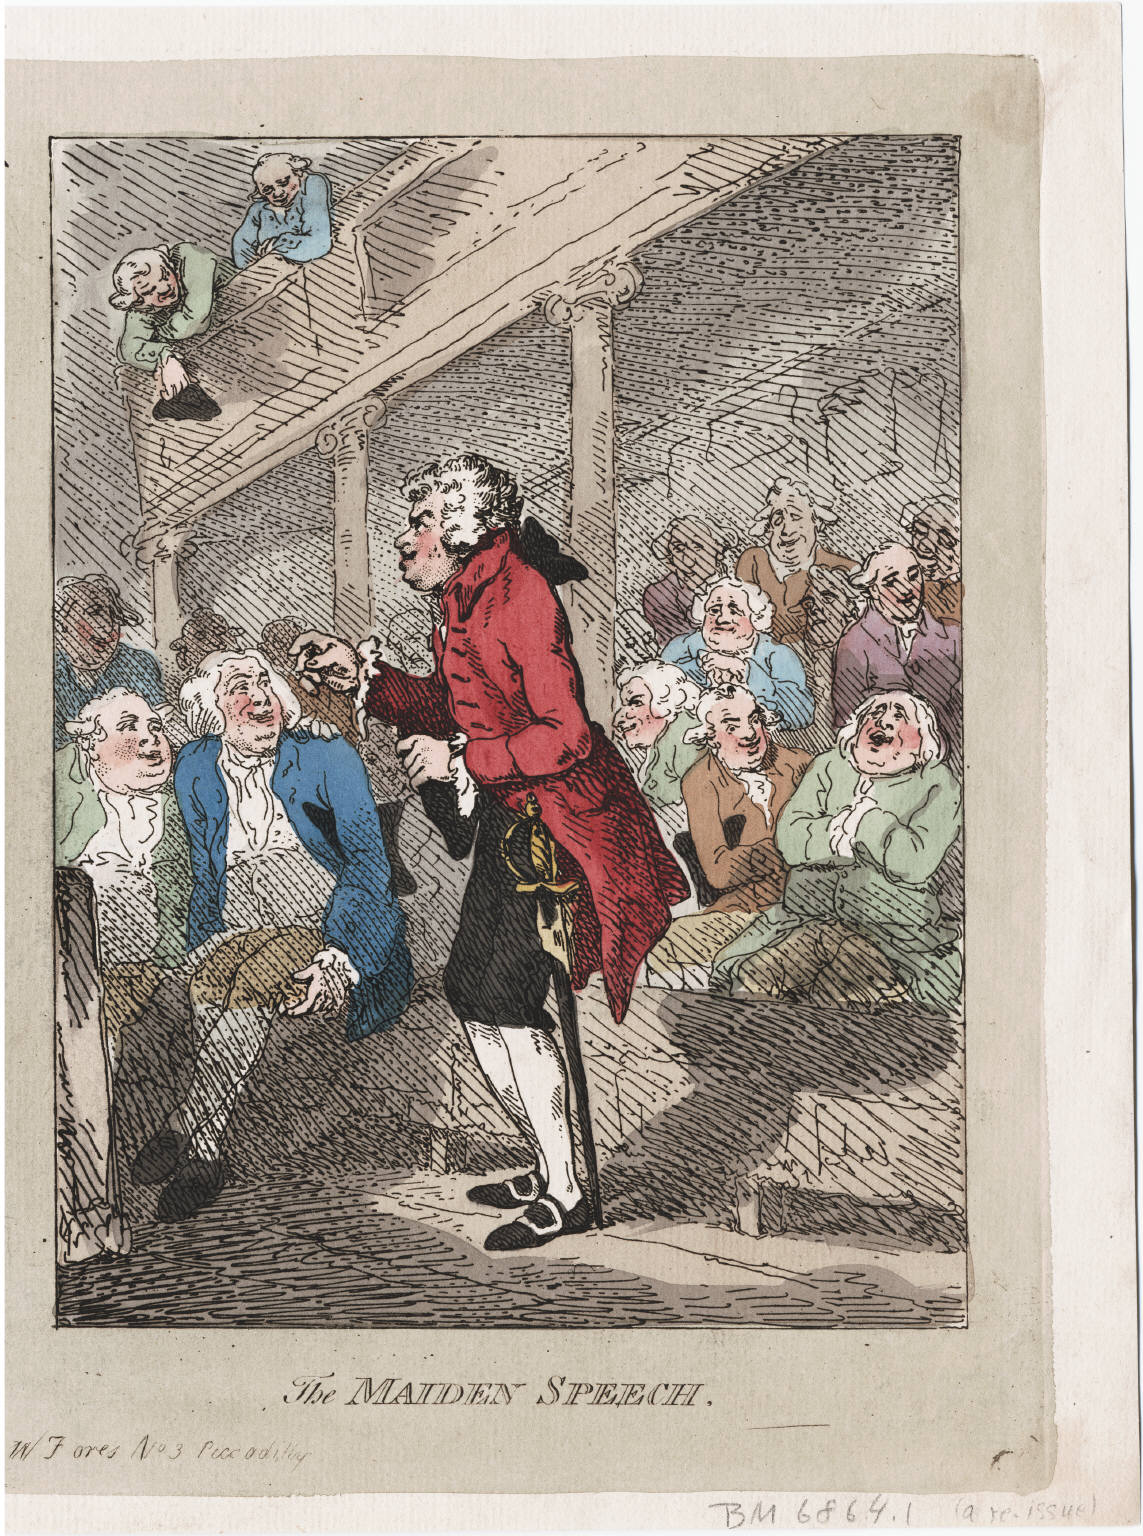 Thomas Rowlandson's Maiden Speach from 1792, courtesy of the Lewsi Walpole Library